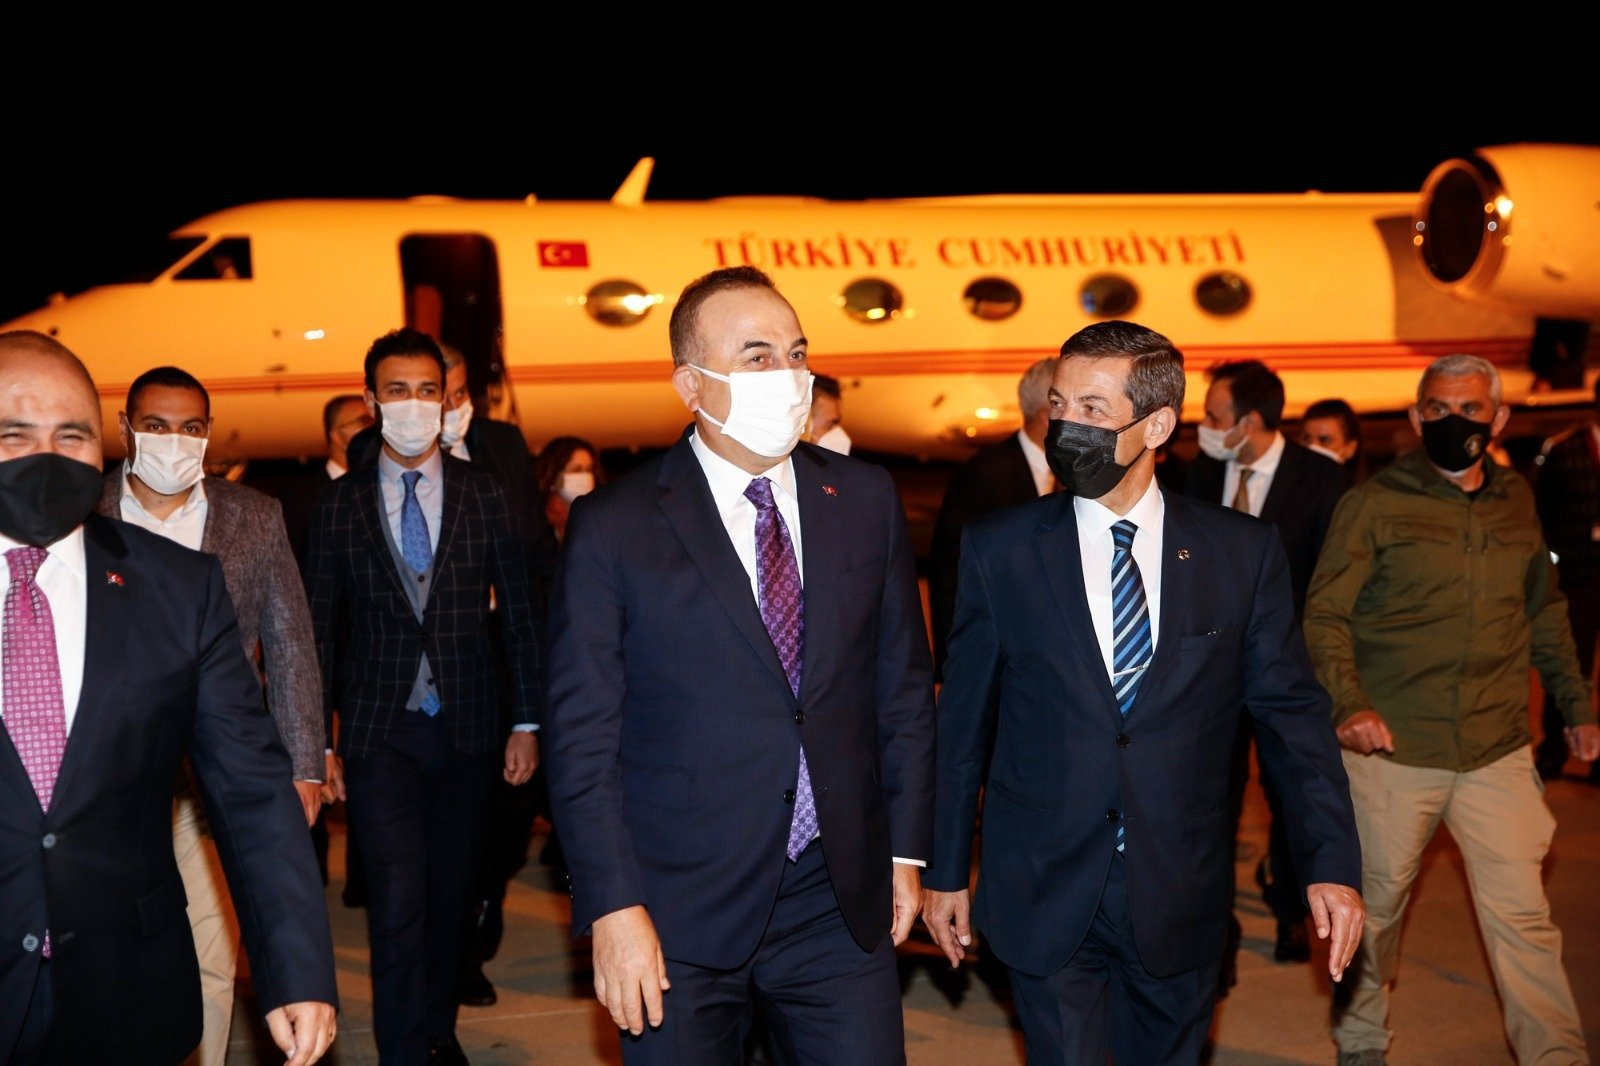 Foreign Minister Mevlüt Çavuşoğlu arrived in the Turkish Republic of Northern Cyprus, April 15, 2021 (AA Photo)